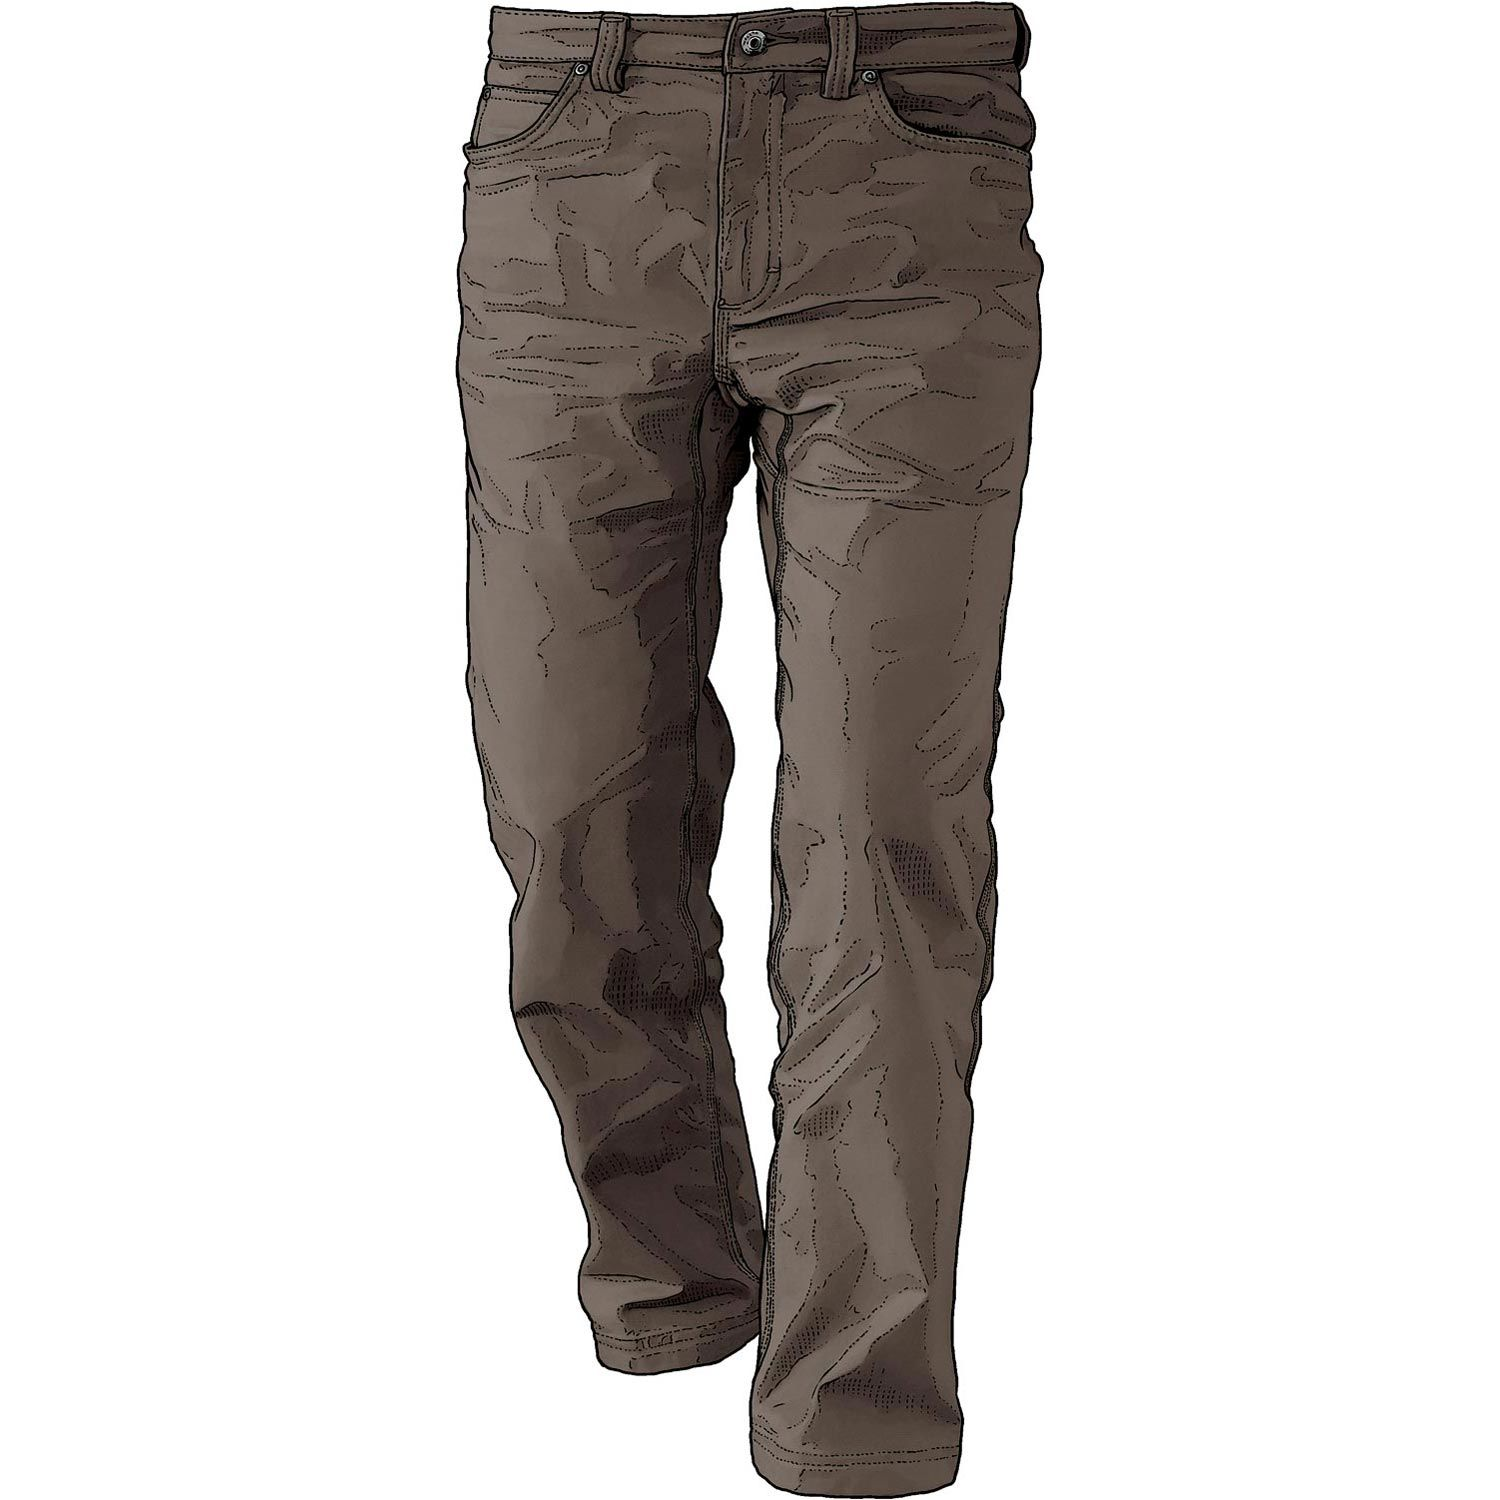 Men's DuluthFlex Fire Hose 5-Pocket Jeans | Duluth Trading Company